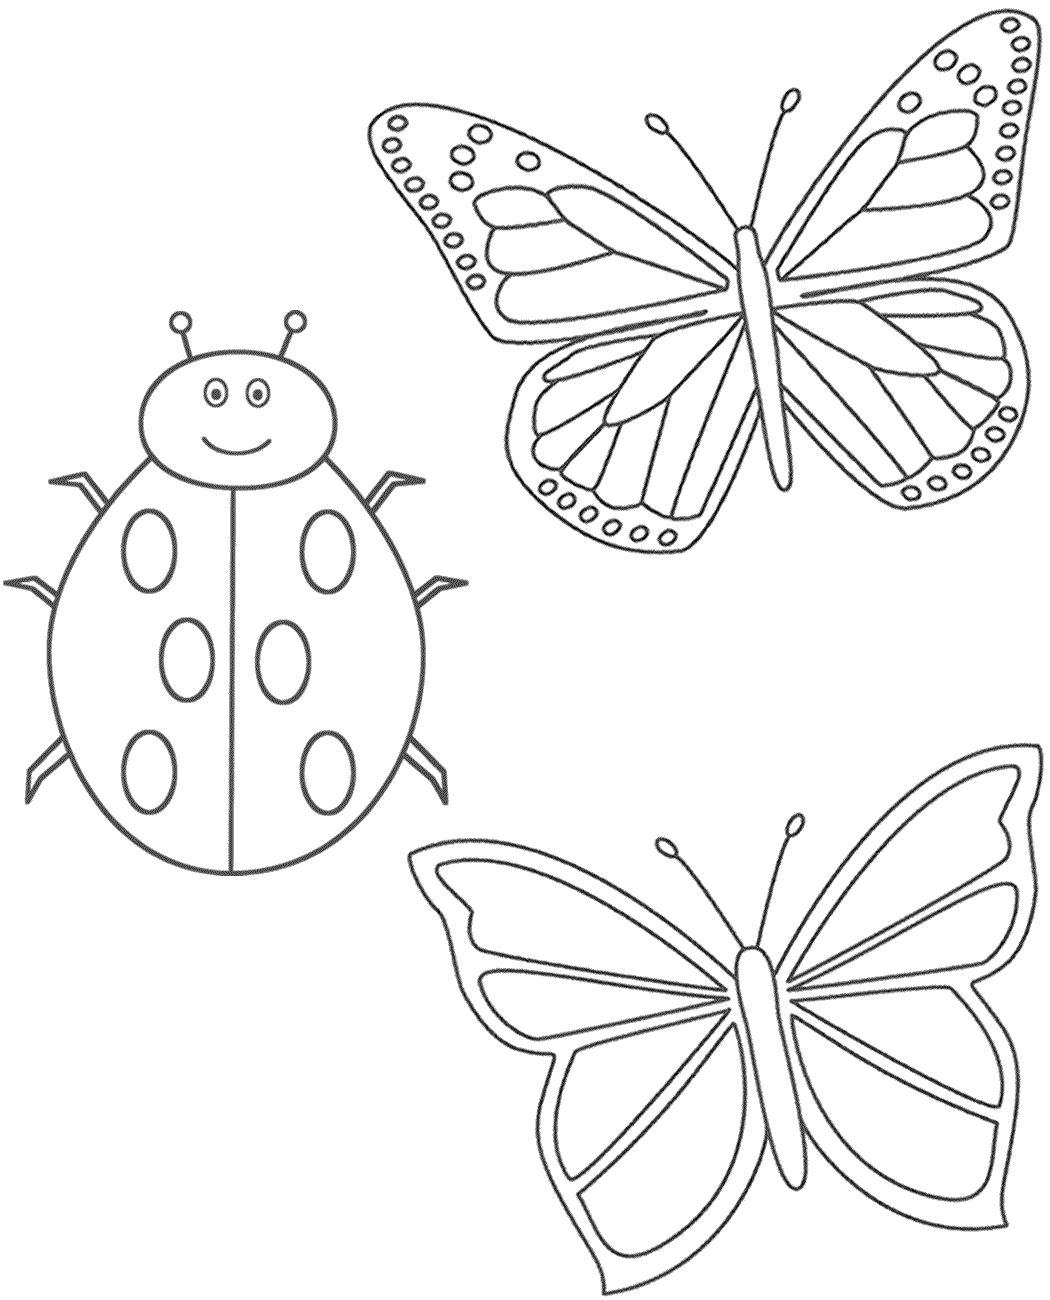 Ladybug Printable Coloring Pages Coloring Home